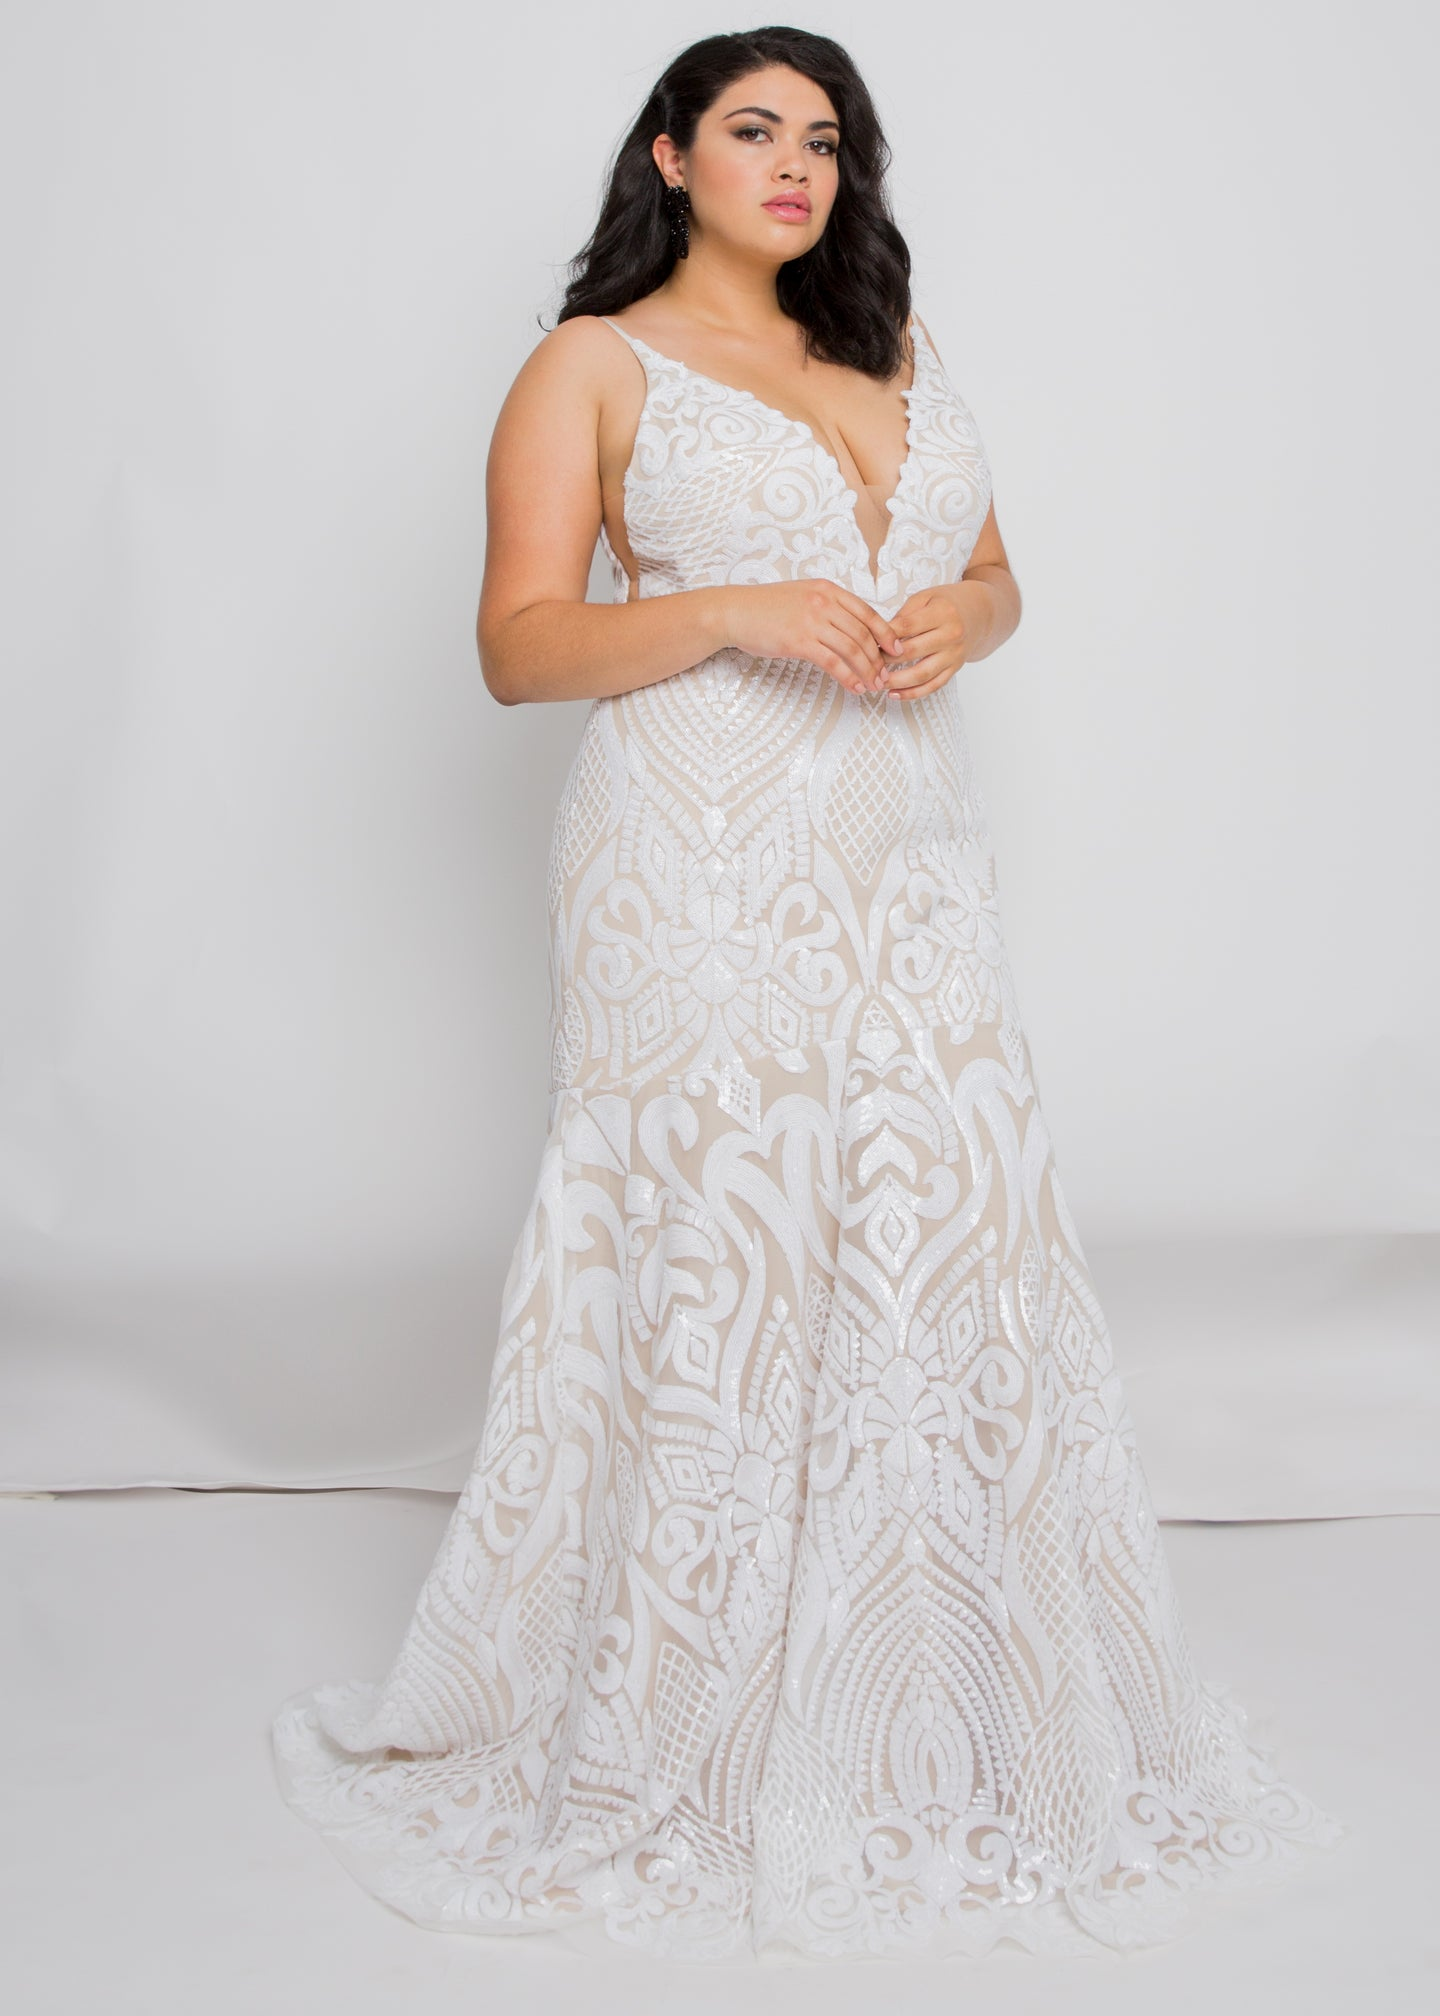 Gorgeous bridal gowns for all body shapes: plus size, curvy, or petite brides. Try on our wedding dresses at home. Size 0-30. Comfortable. Convenient. Fun. Lace or satin. Mermaid or A-line. The plunging v-neck elongates the neck while the slimming trumpet skirt elongates the legs, giving a completely mesmerizing look.We love how the ivory sequins play against the nude underlay of this skirt and how the embellishment follows the trumpet fit.